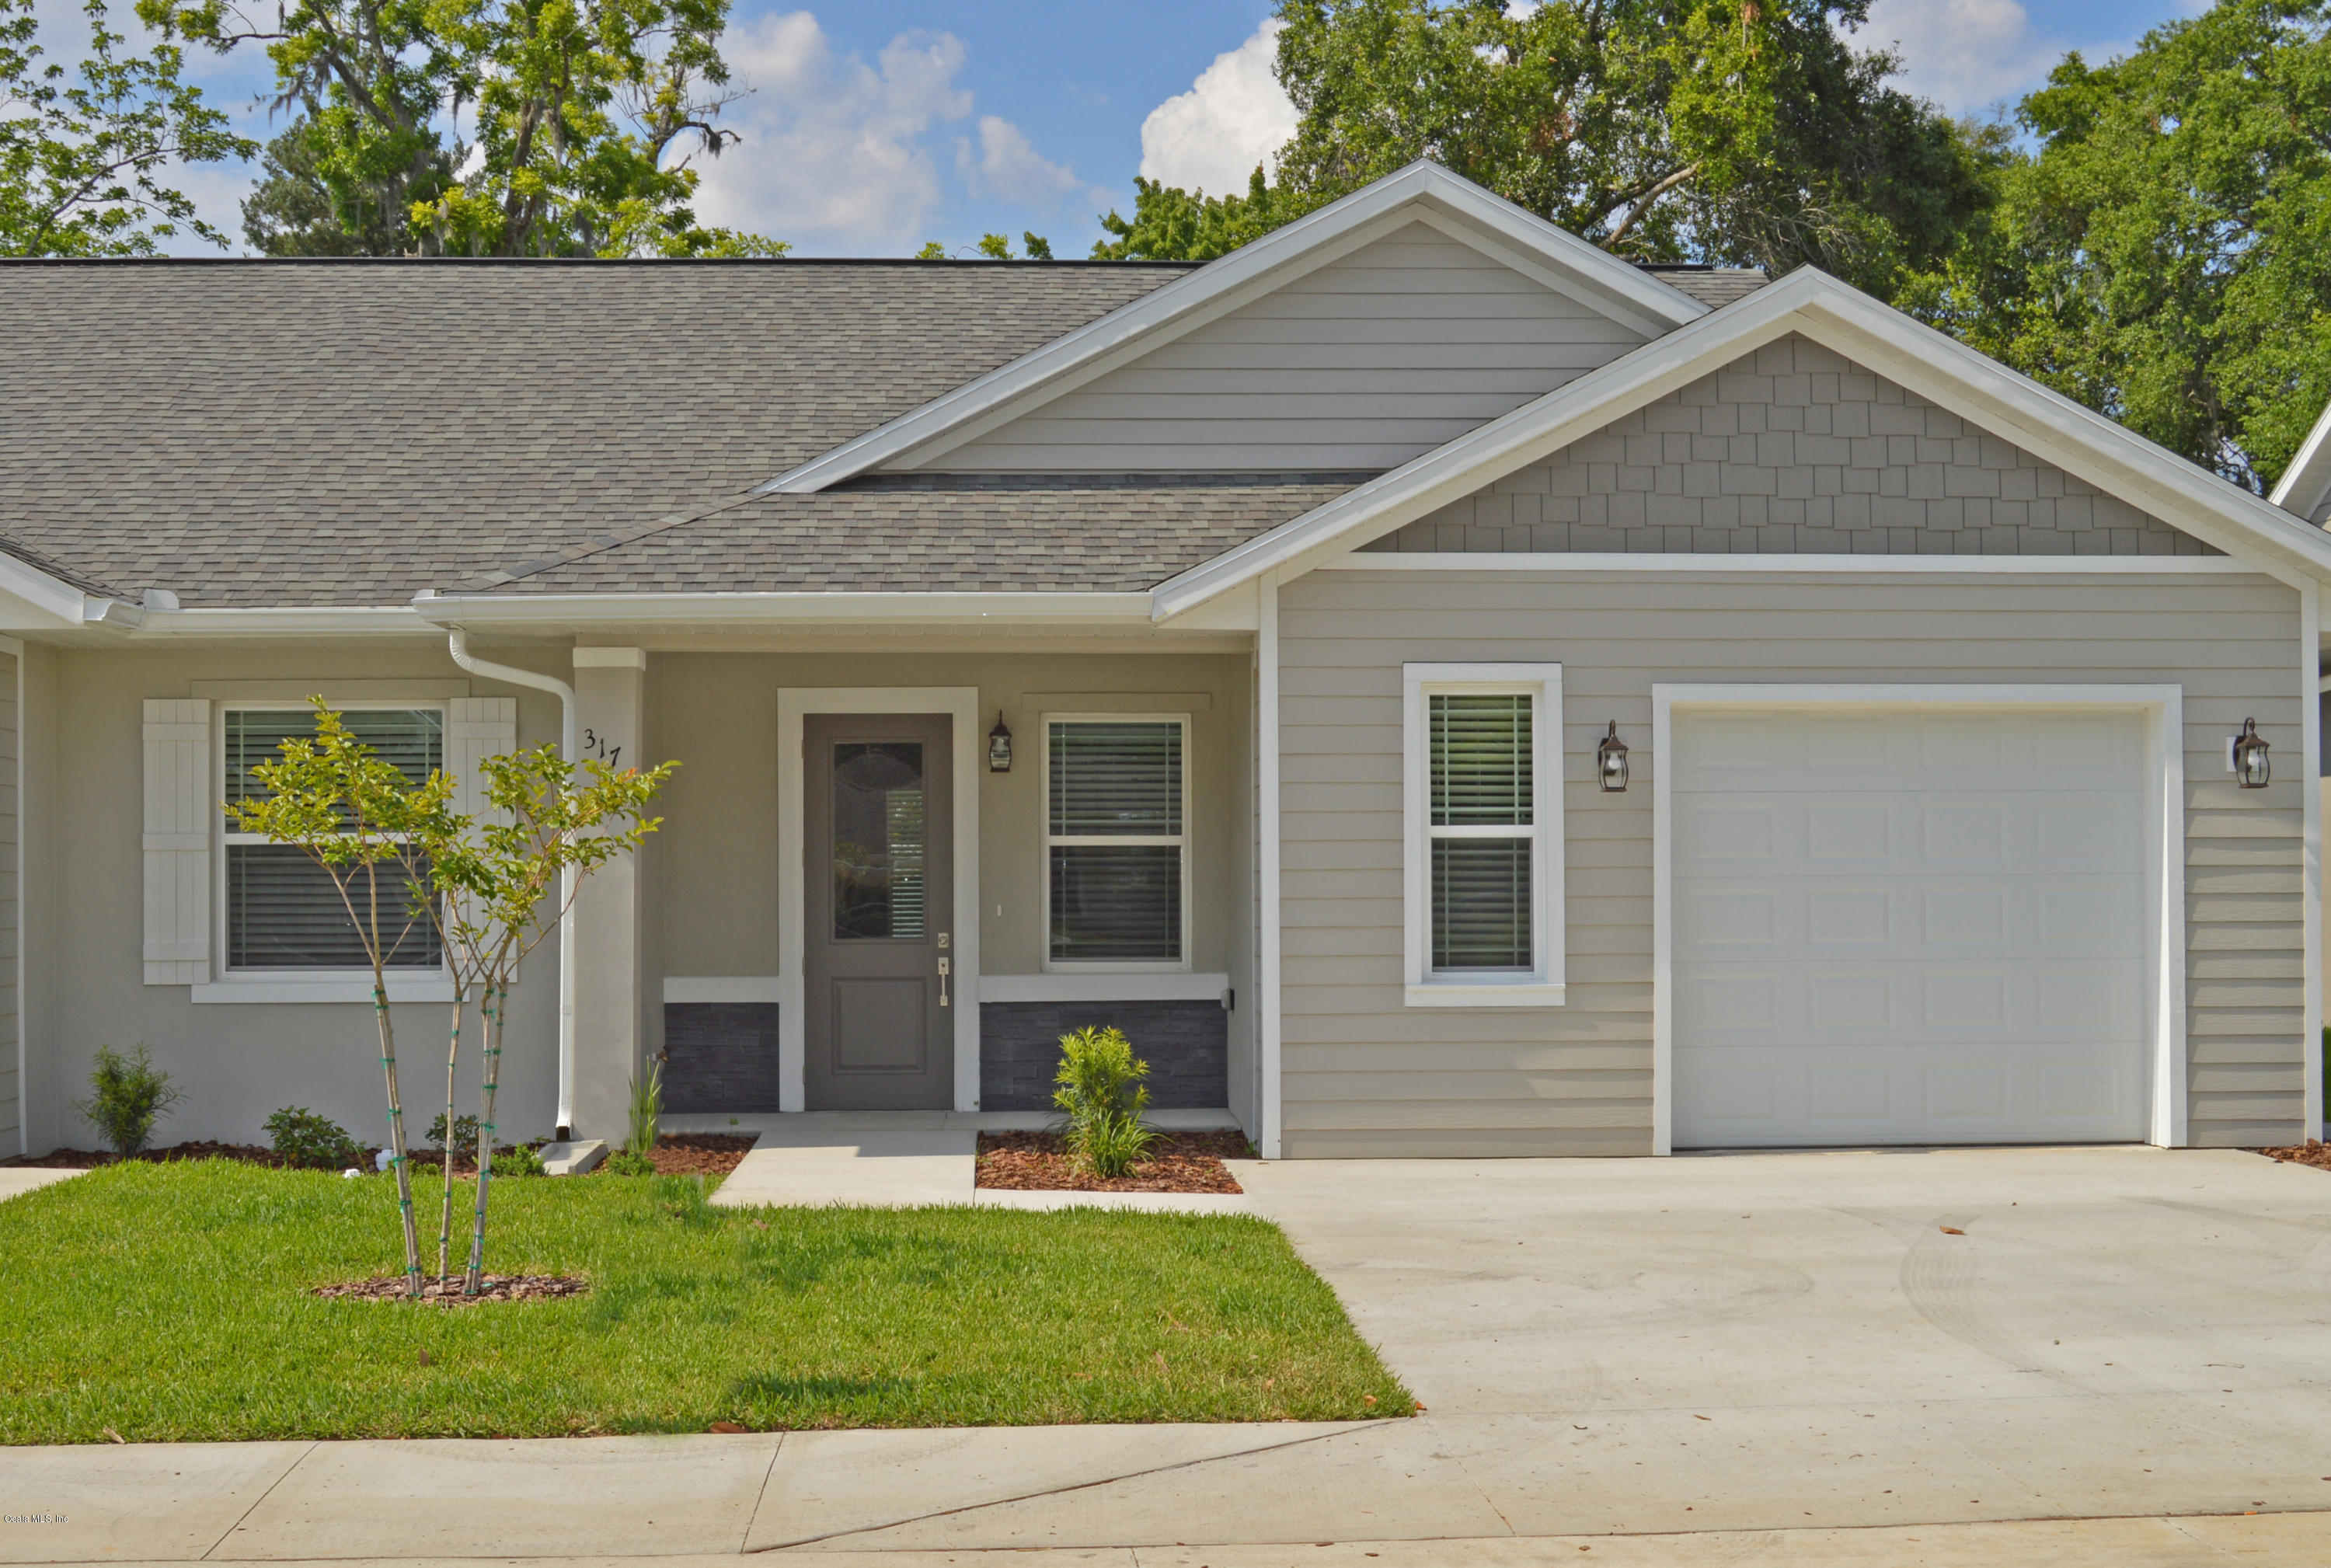 325 SE 10TH STREET, OCALA, FL 34471